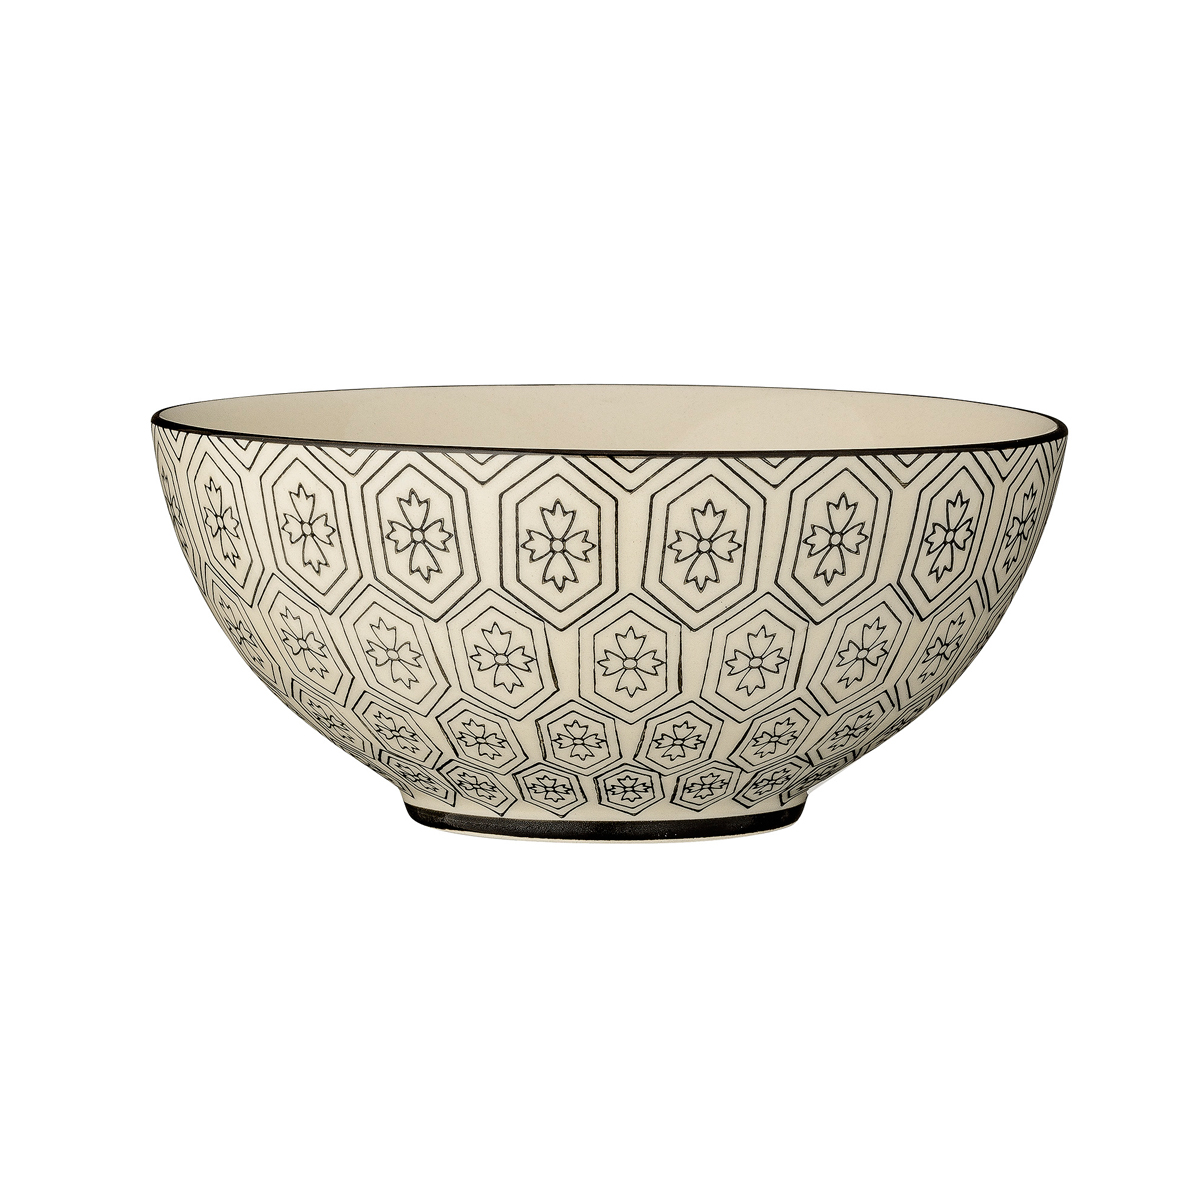 carlia-bowl-DAY-Home-birger-et-mikkelsen